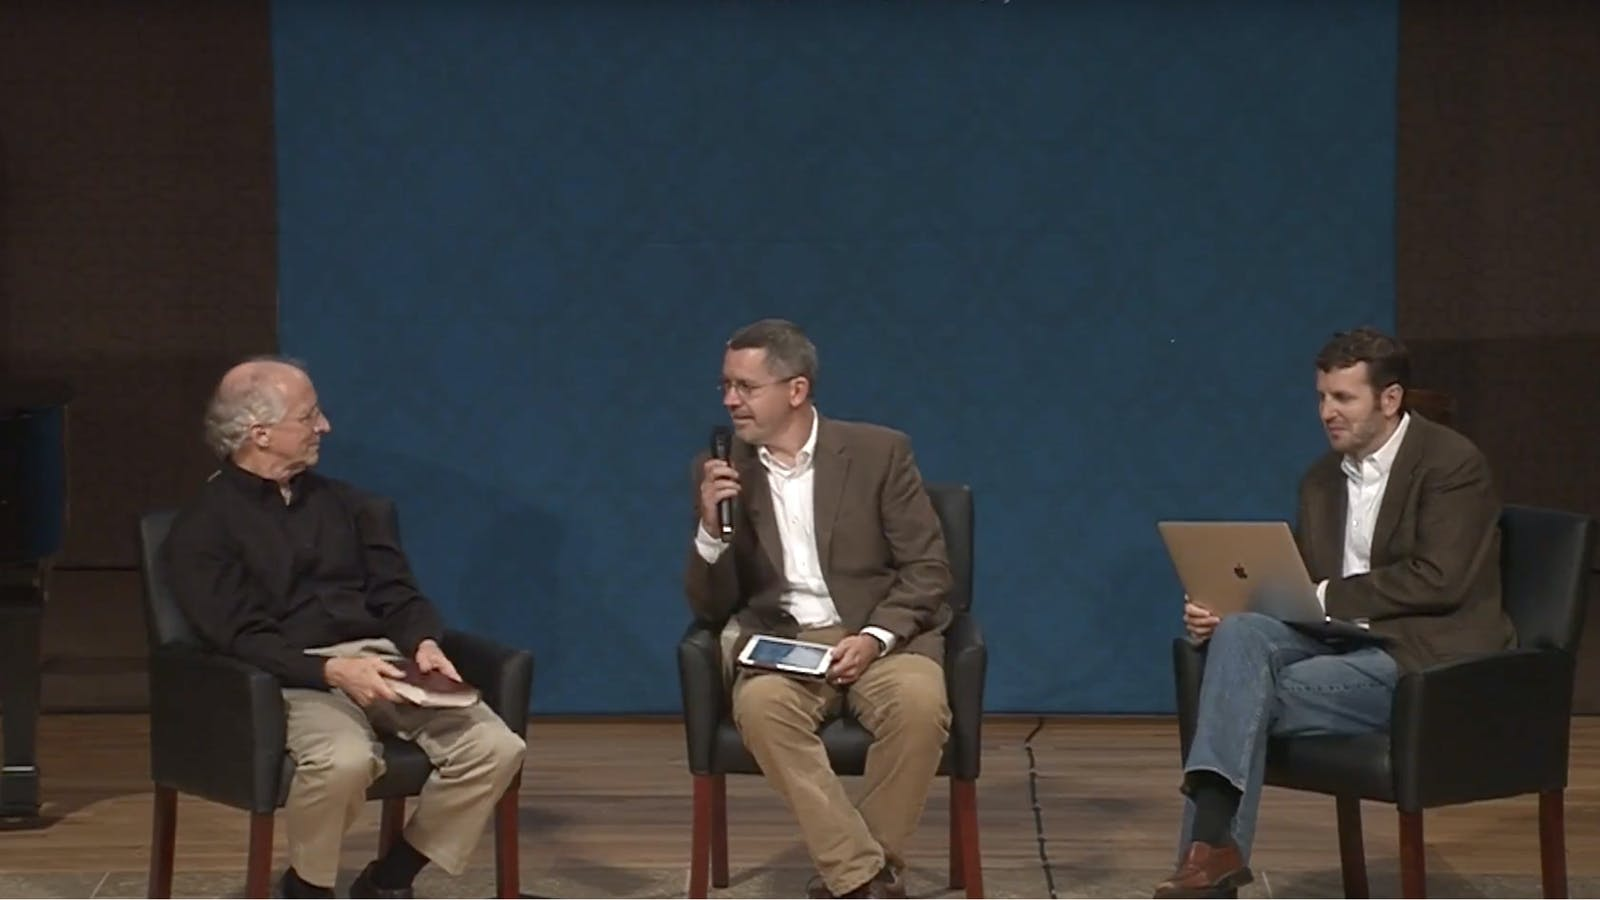 How to Find Gold in God's Word Panel Discussion: Piper, Naselli, & DeRouchie